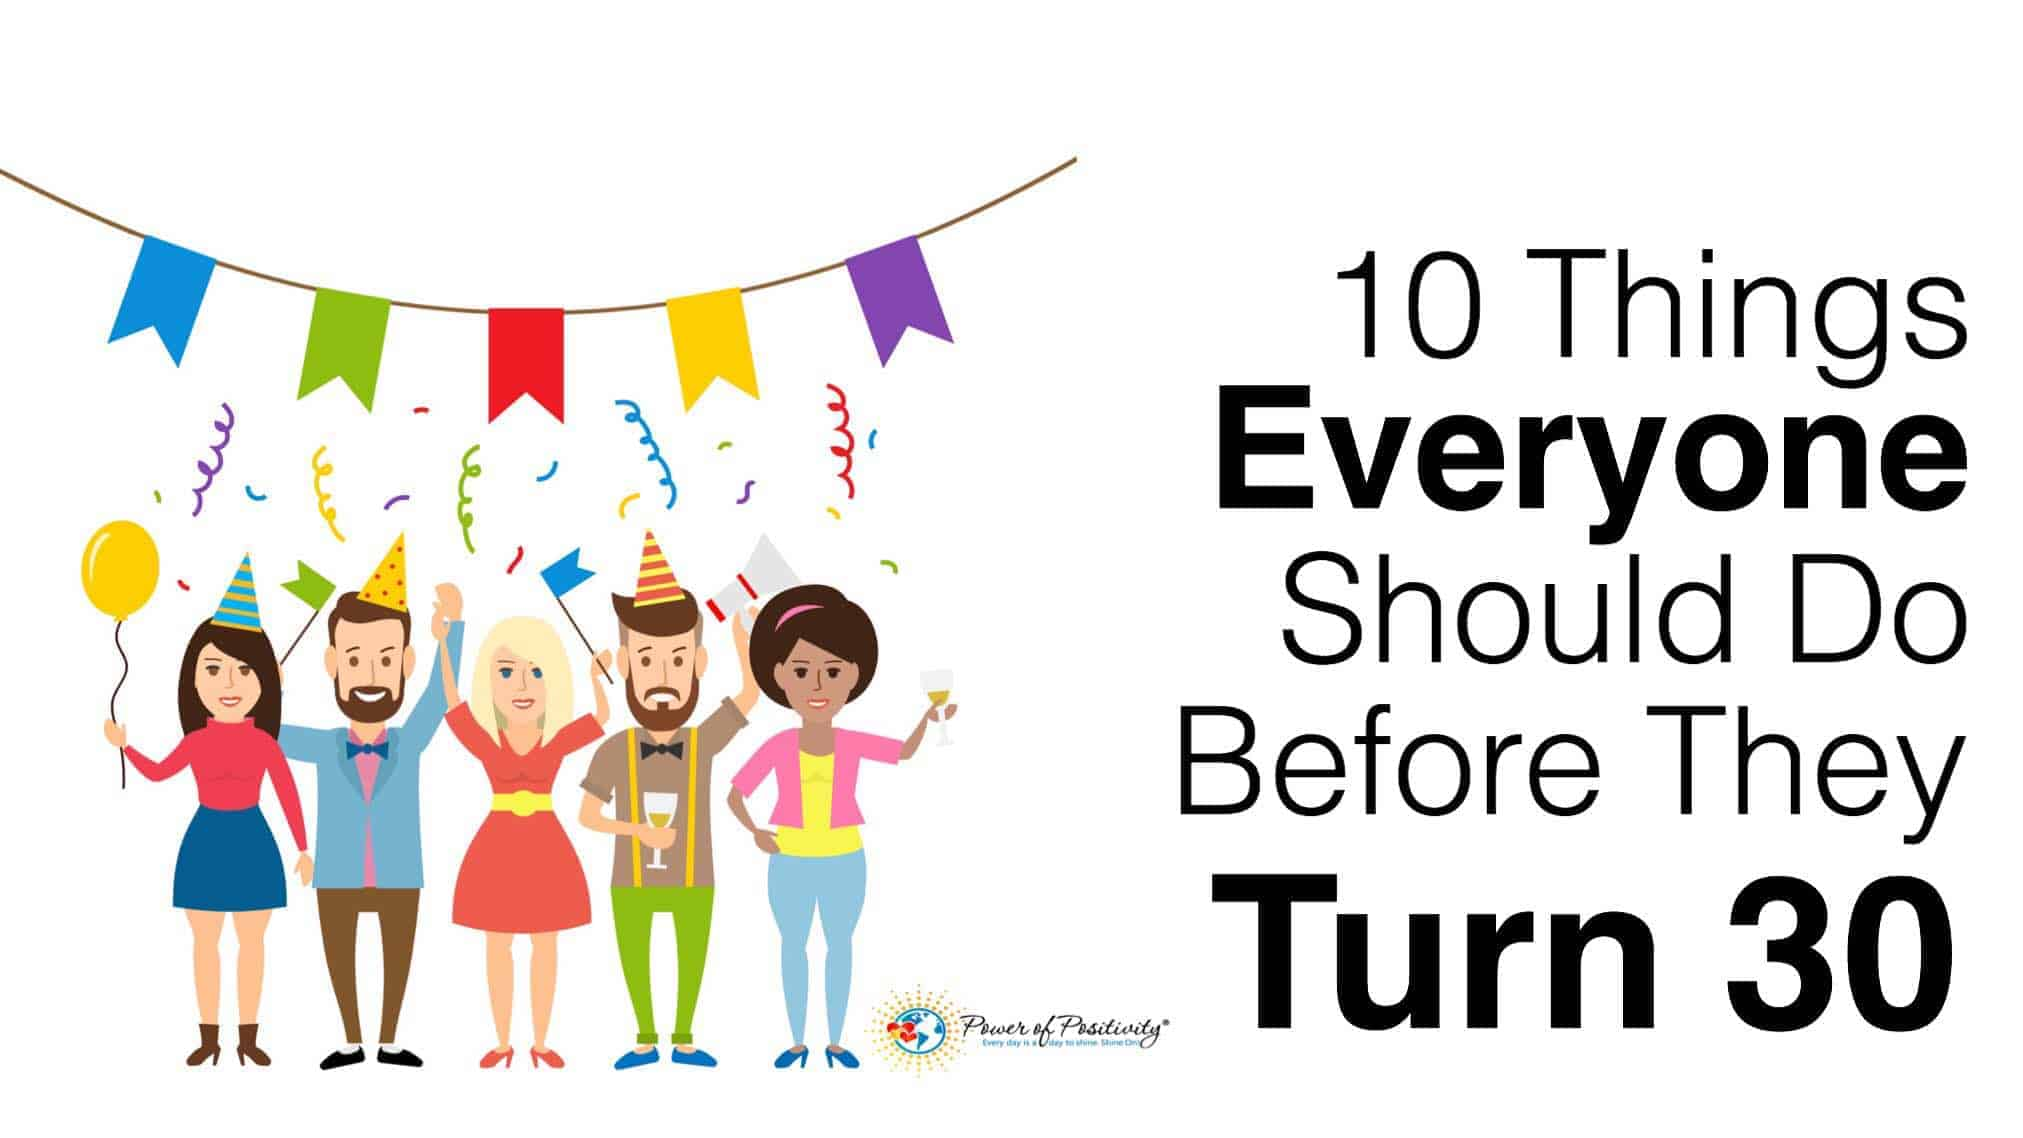 10 Things Everyone Should Do Before They Turn 30